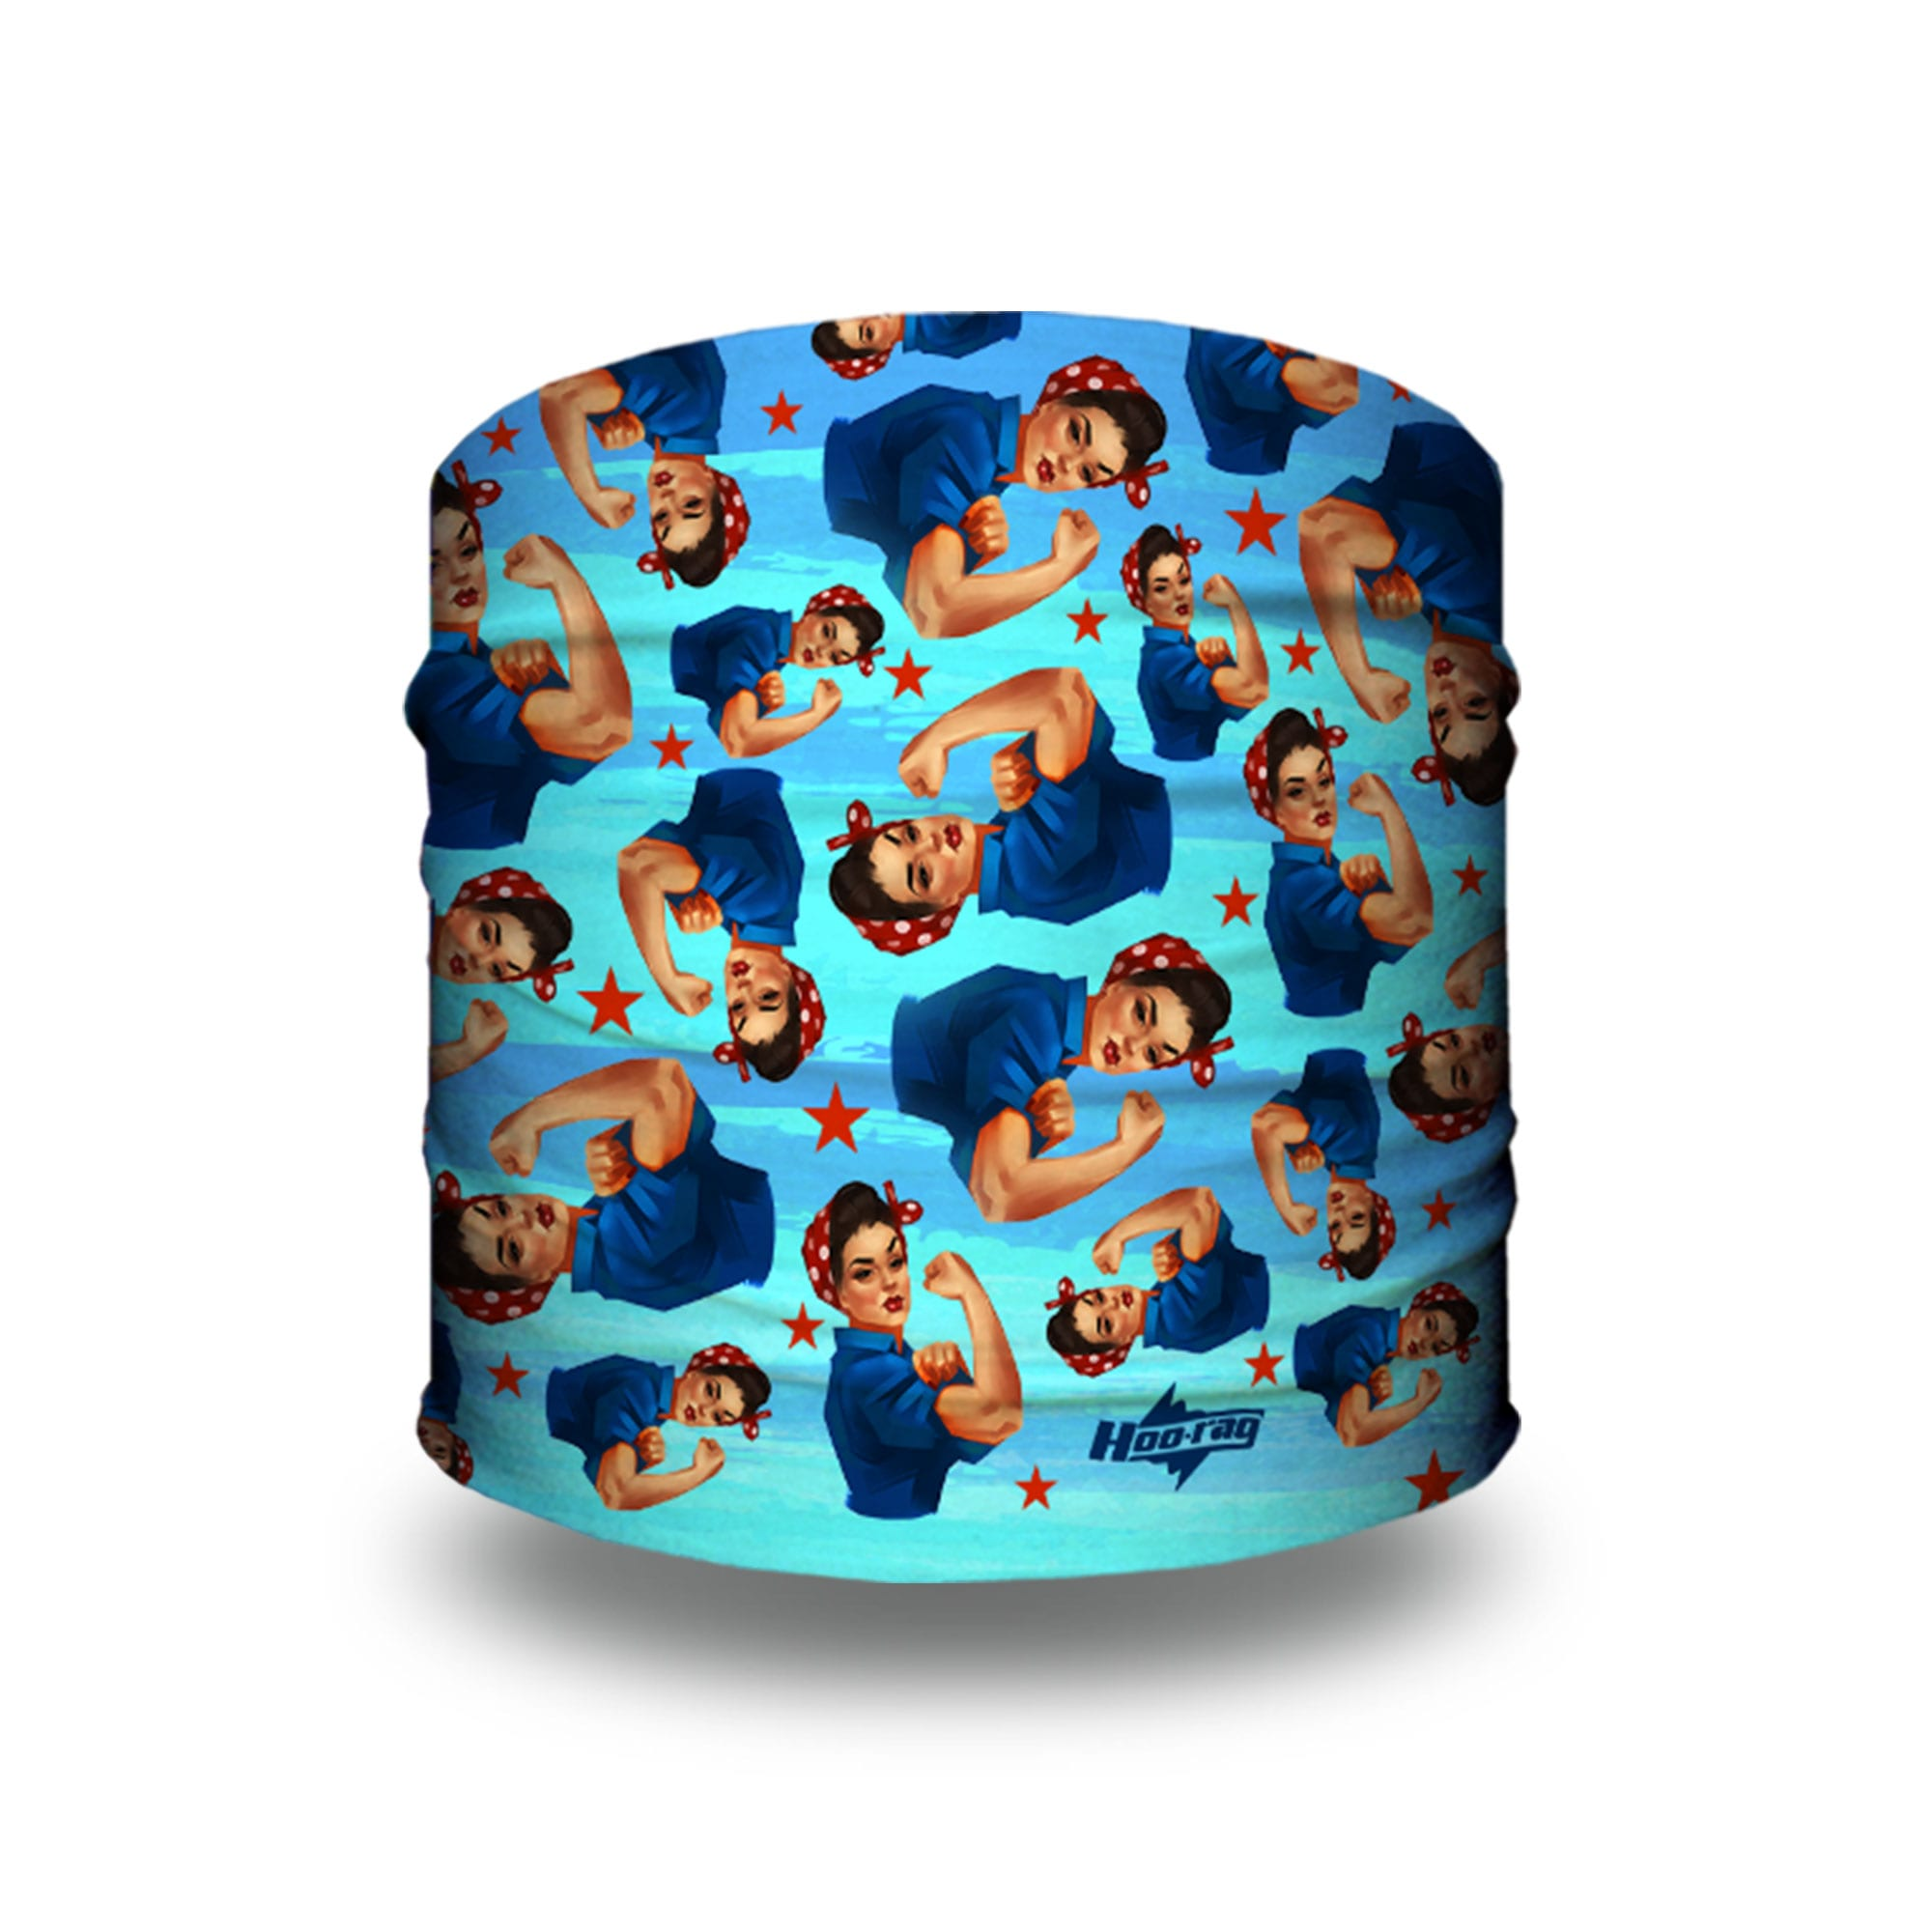 Rosie icon patterned Yoga Headband | Bandanas by Hoo-rag, just $9.95